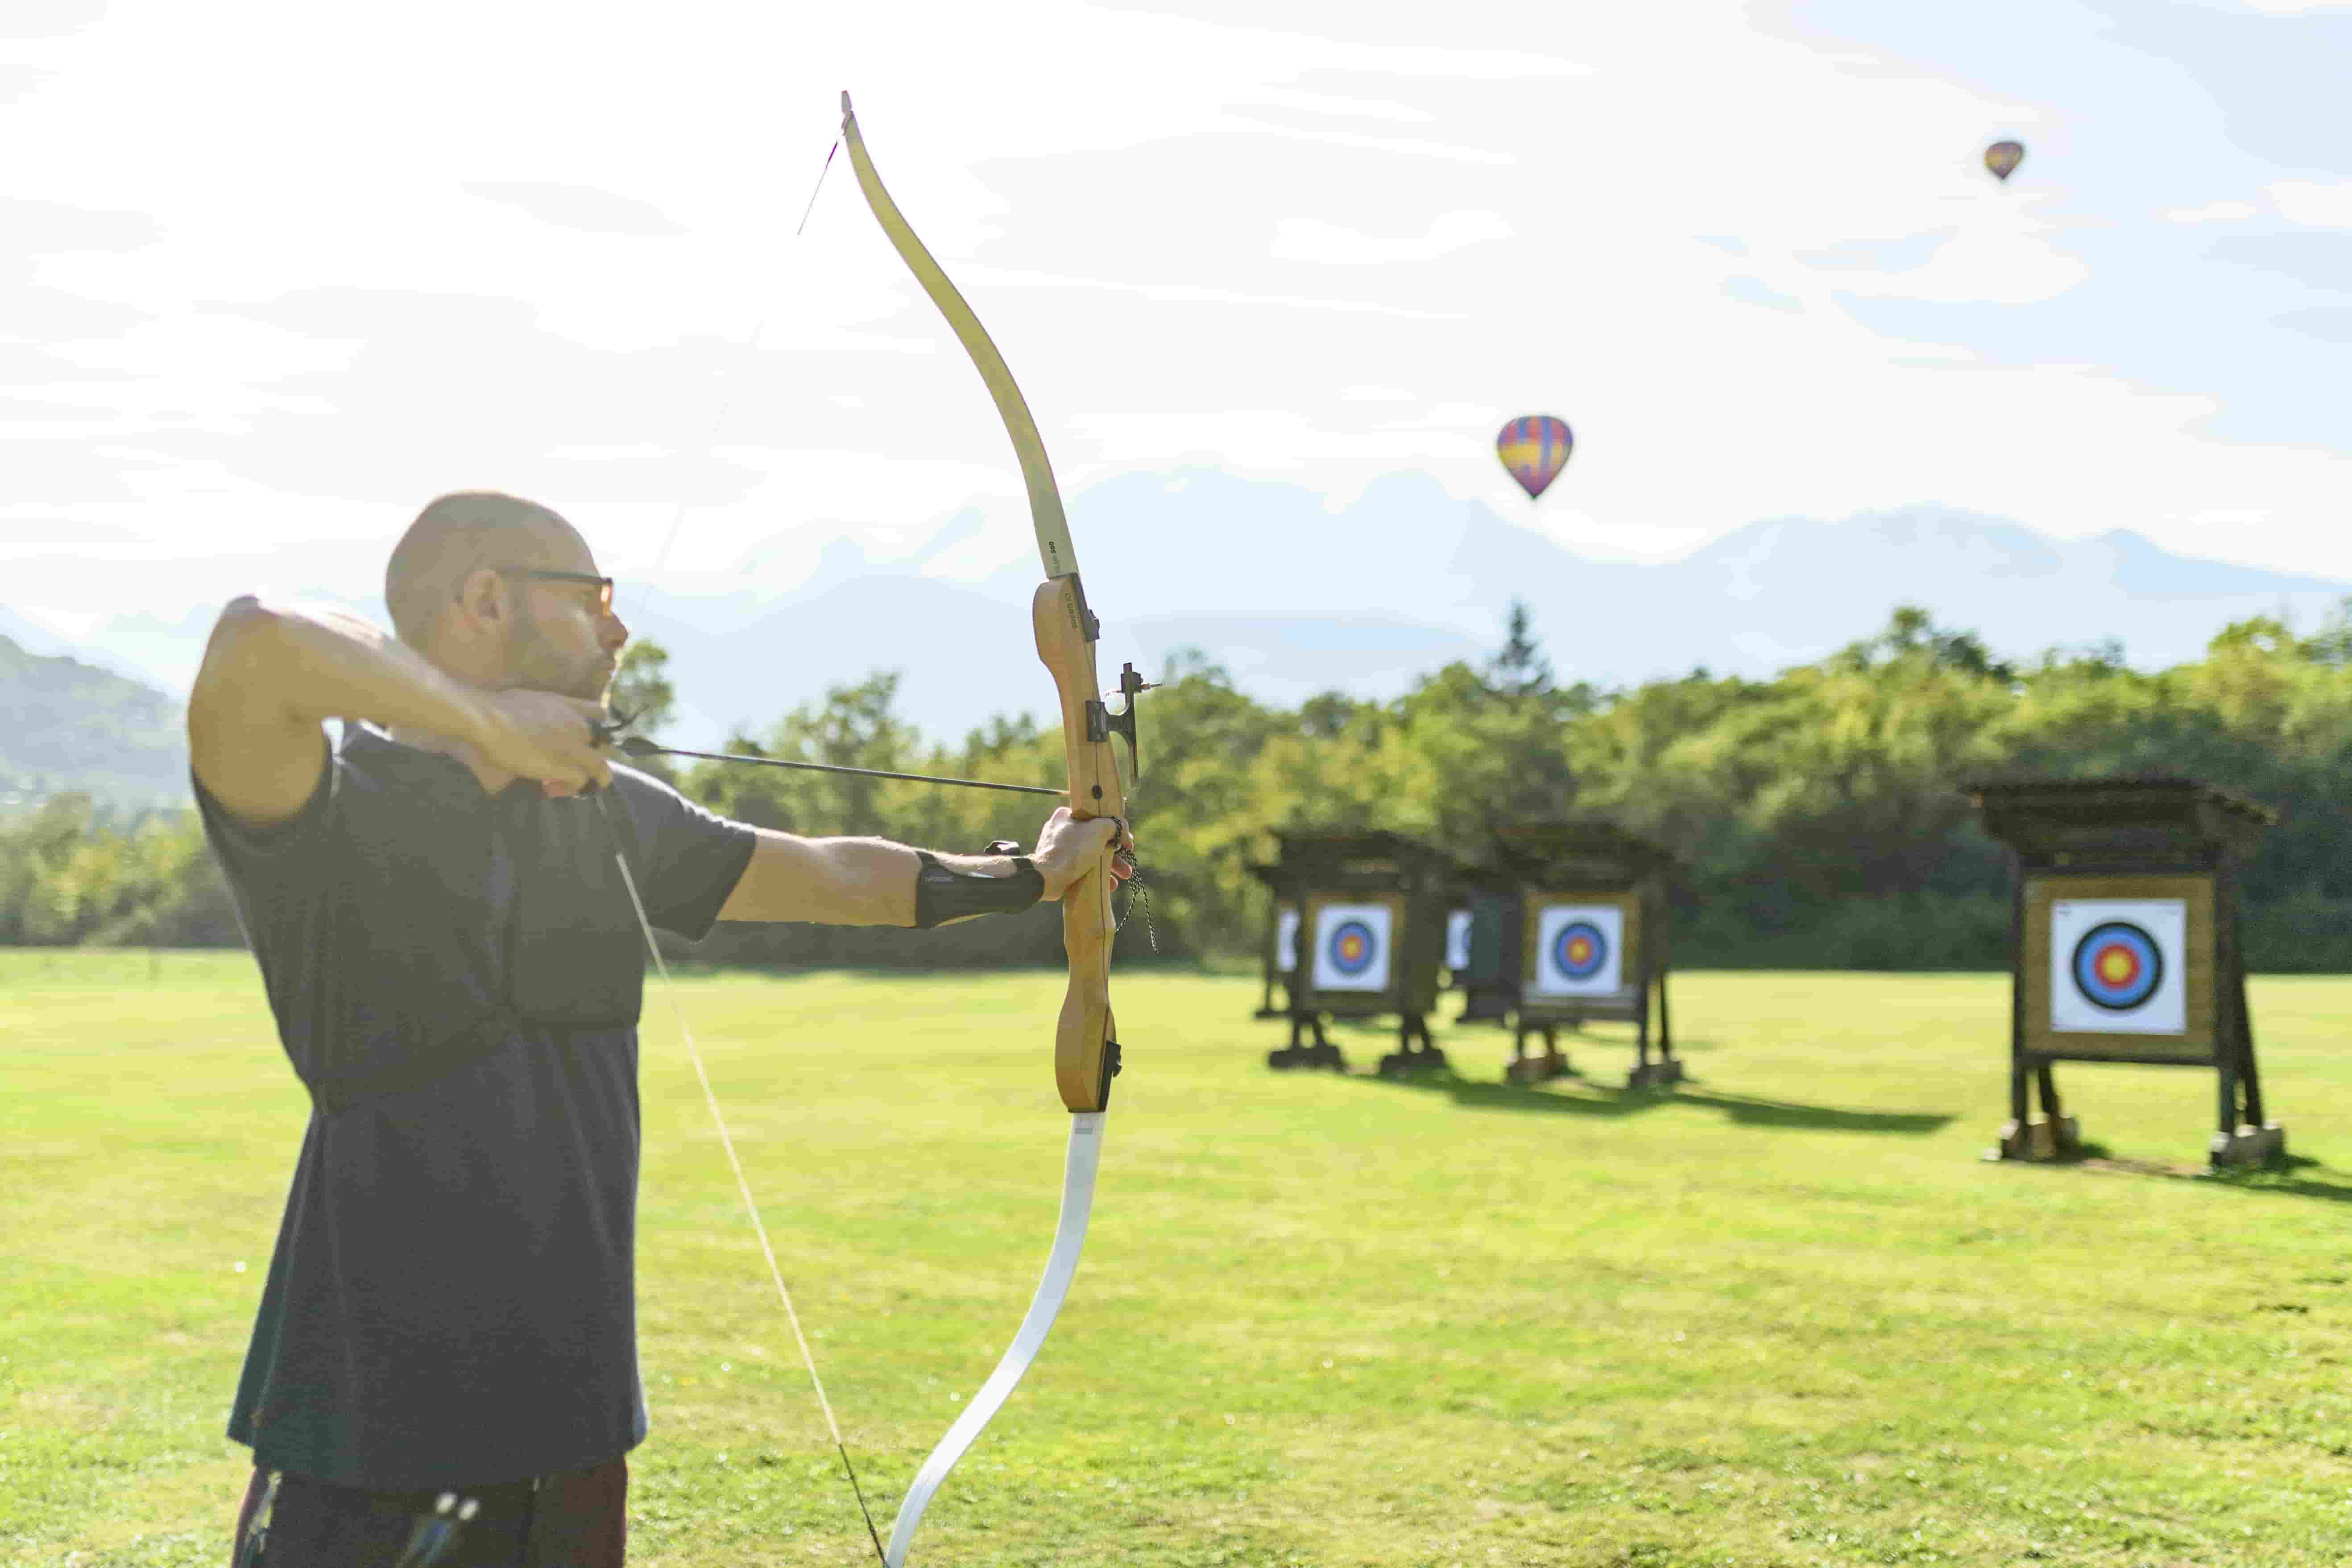 Archery - How to Aim Well